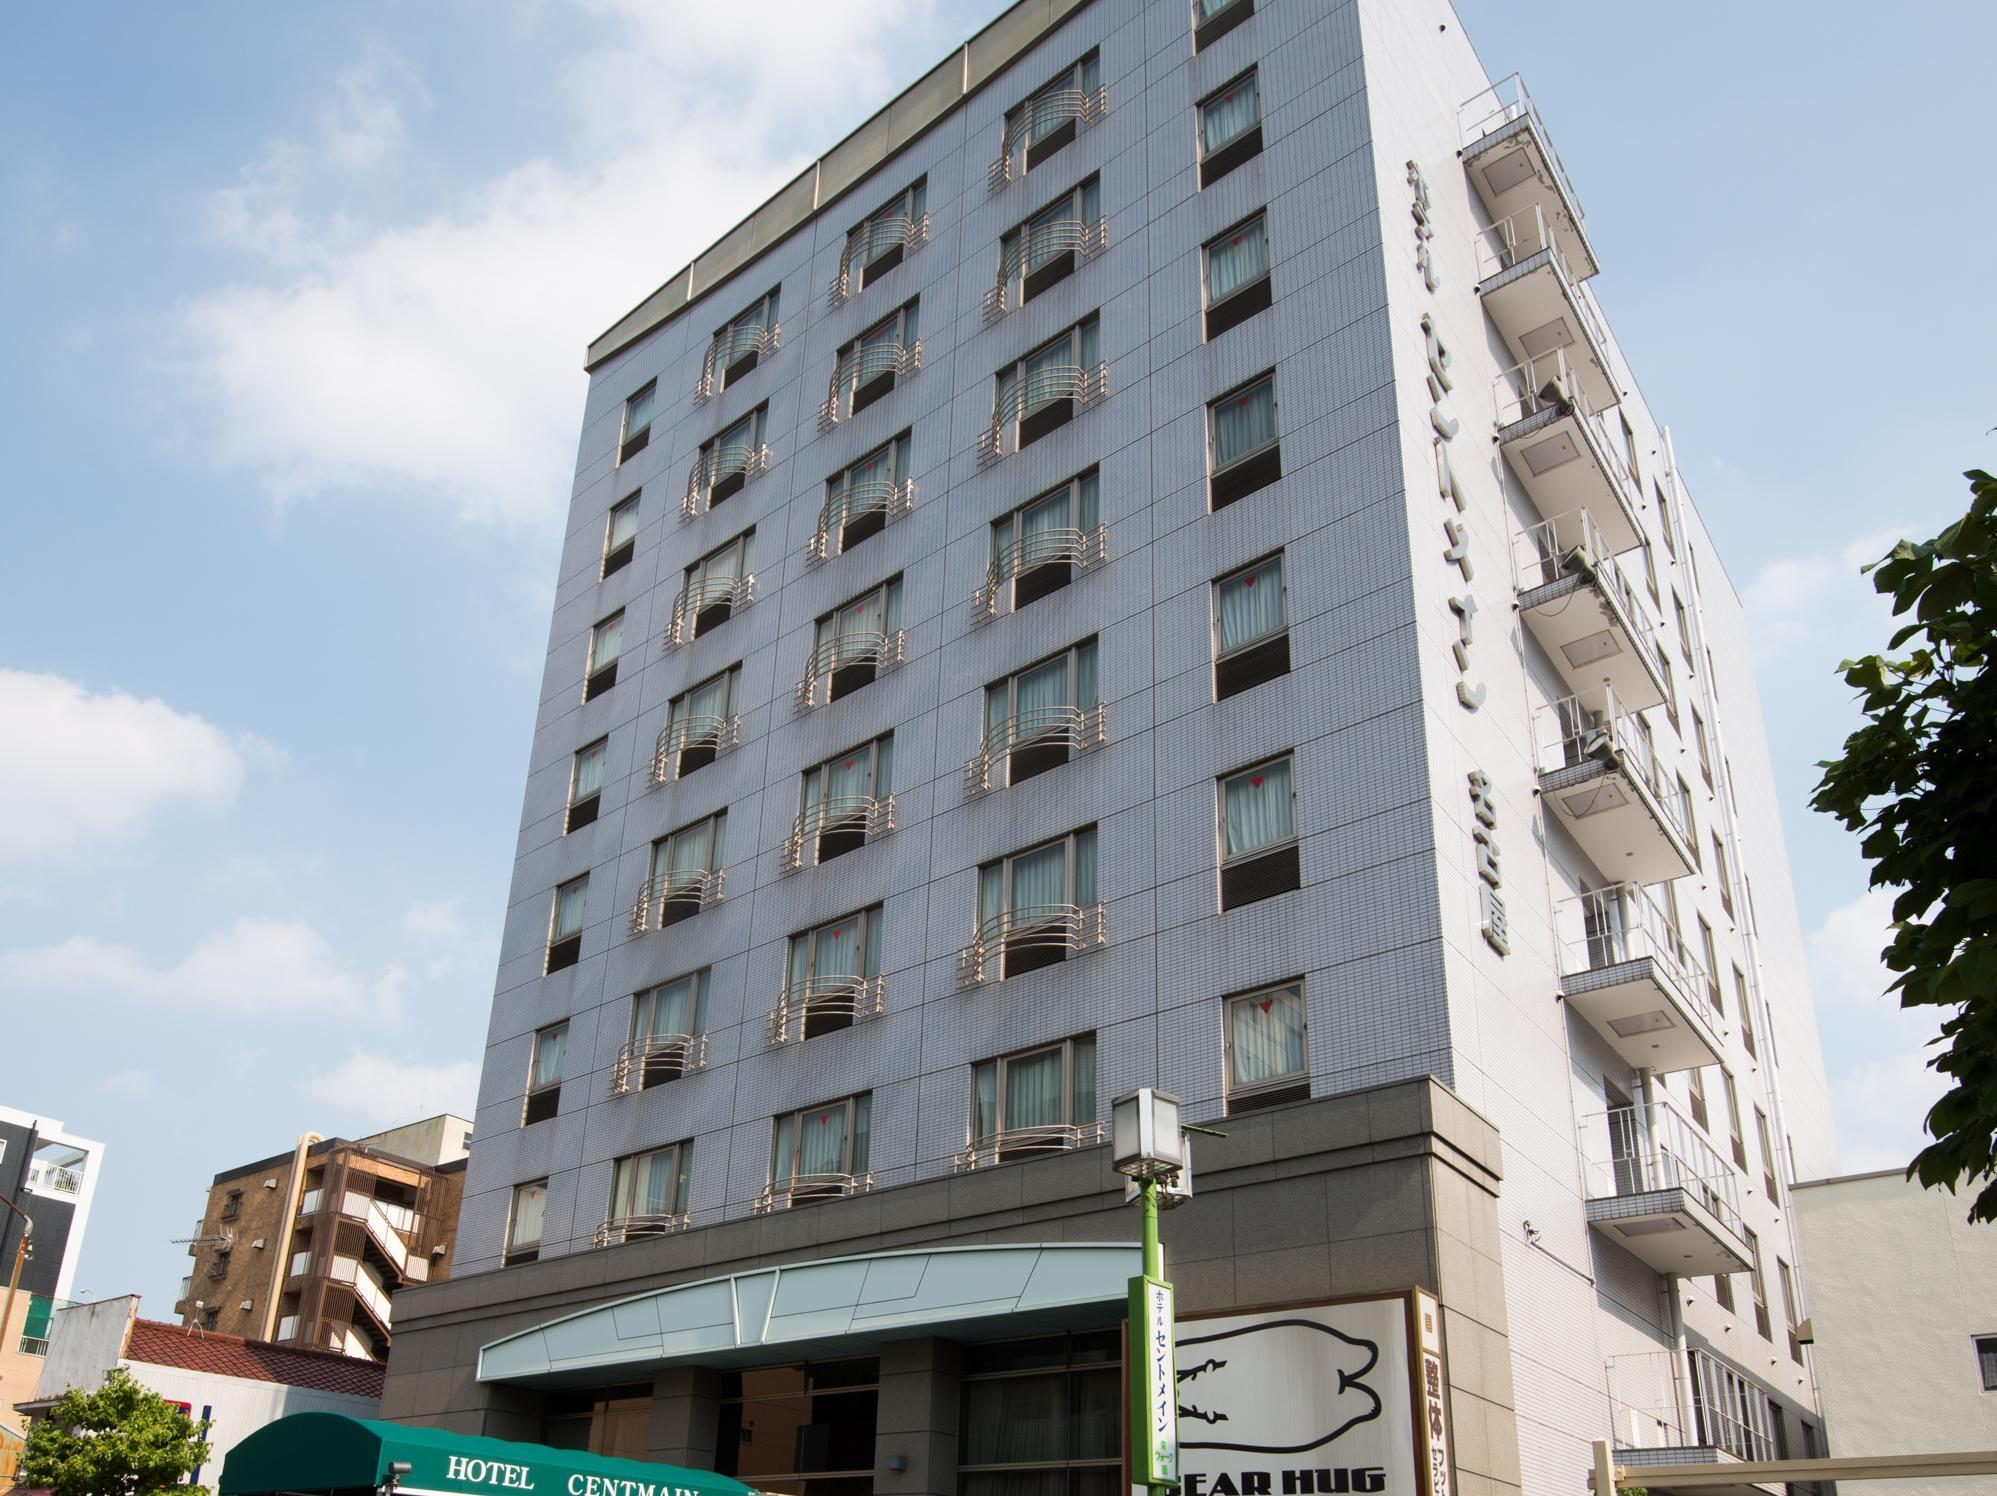 Hotel Cent Main Nagoya